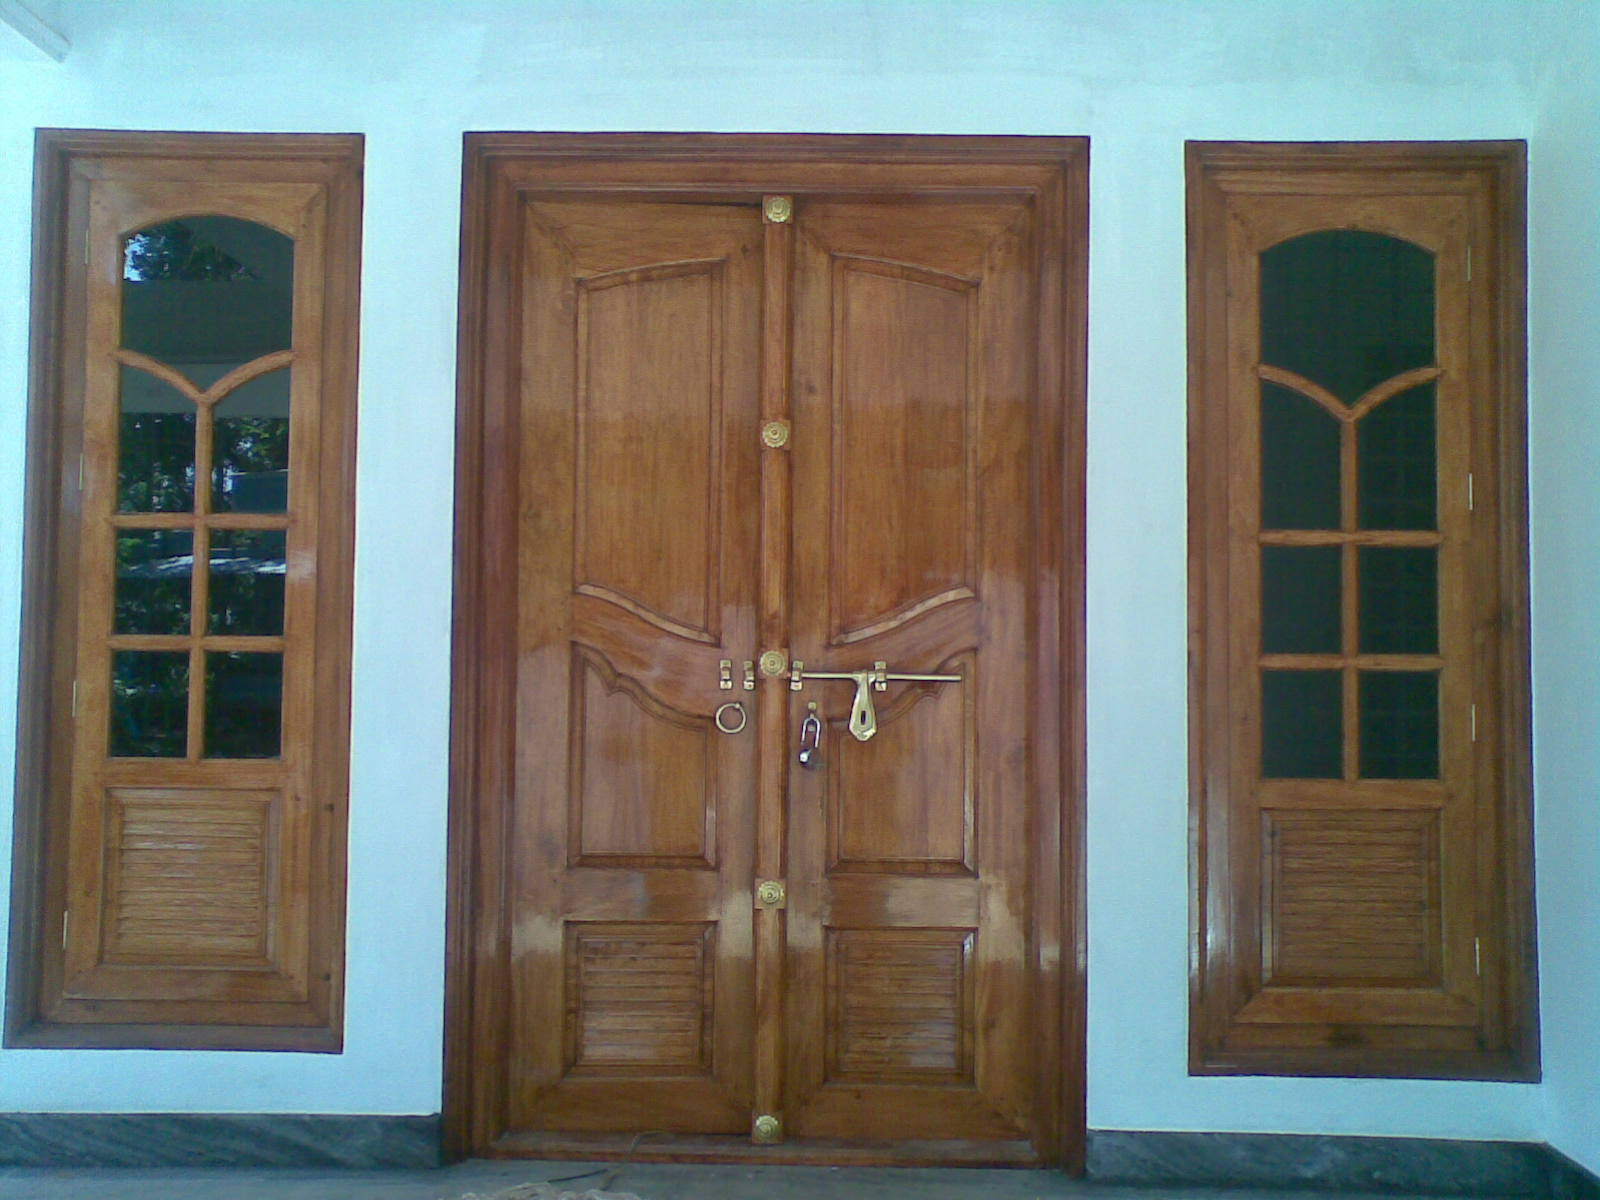 Bavas wood works kerala style wooden front door double door designs - Indian home front door design ...